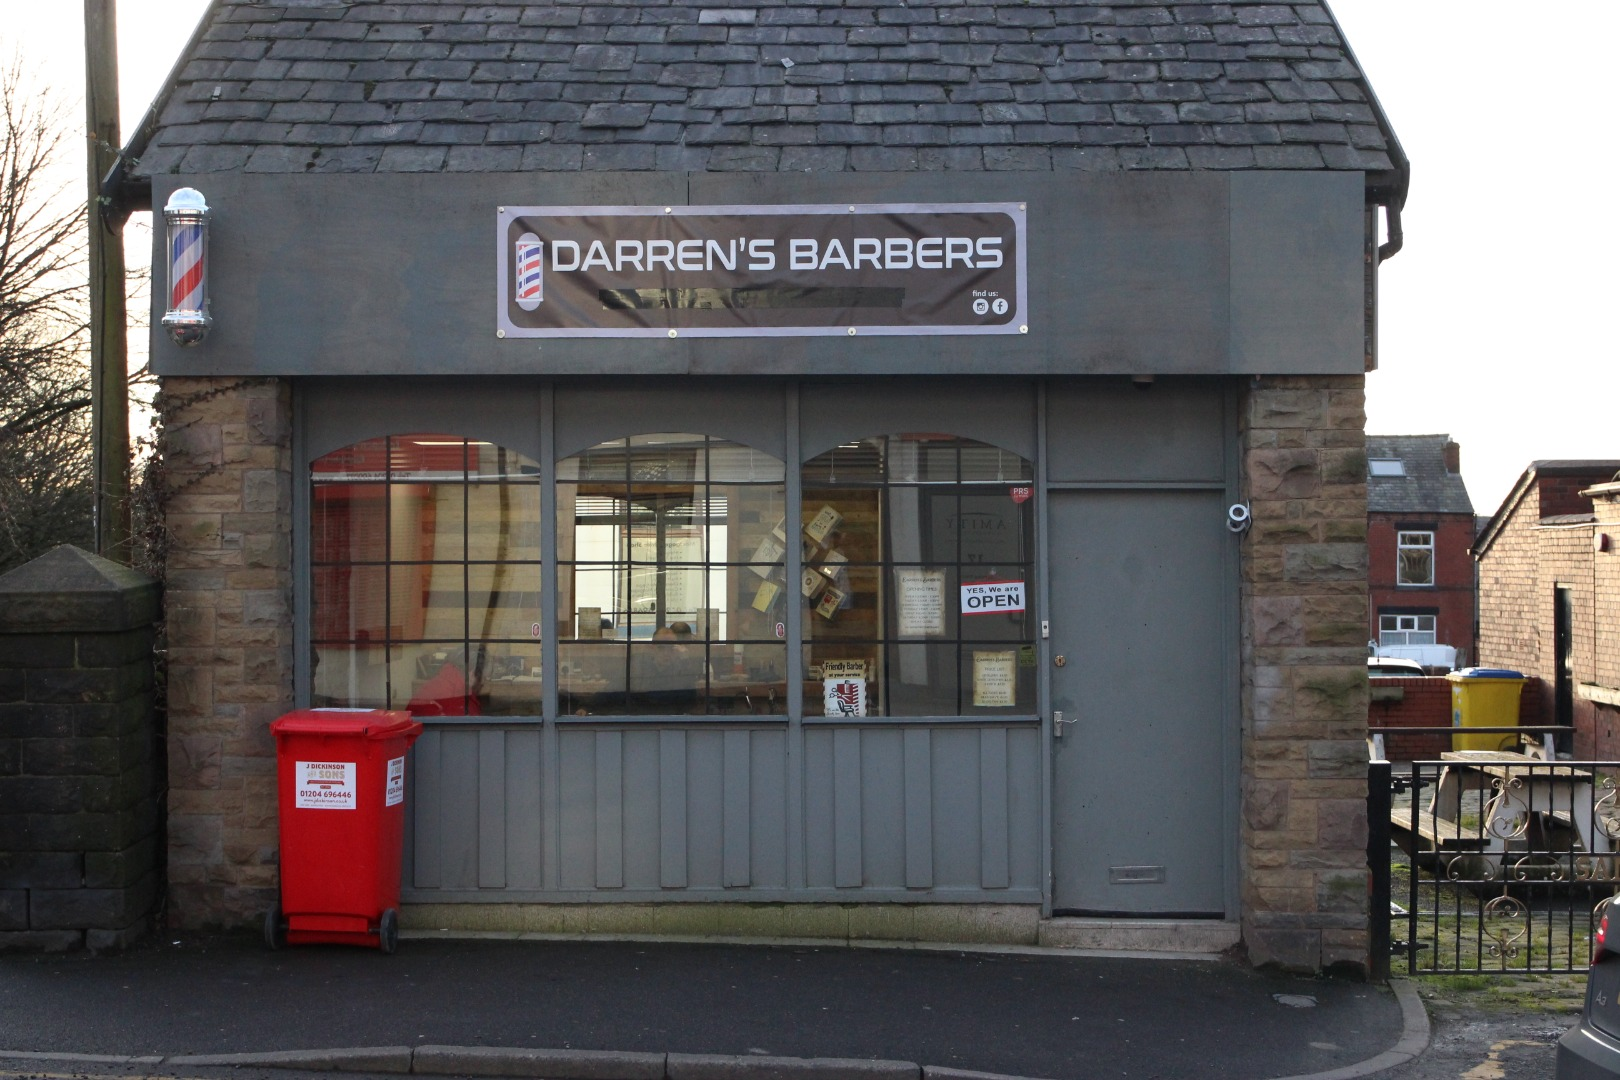 New barbers is a cut above